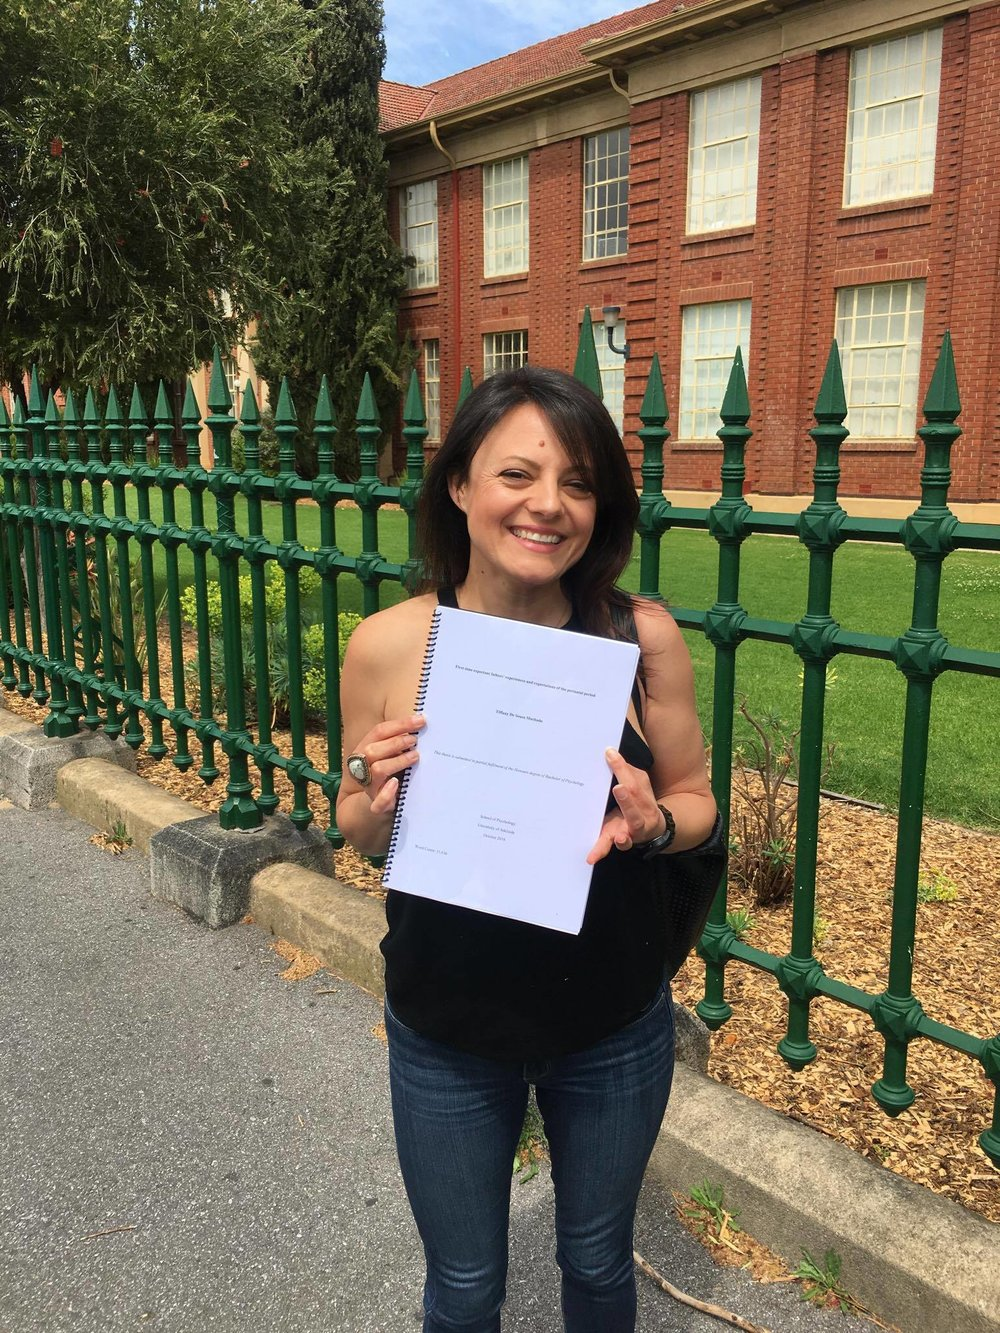 Handing up my Hons thesis - 'Men's perceptions and understandings of postnatal depression'